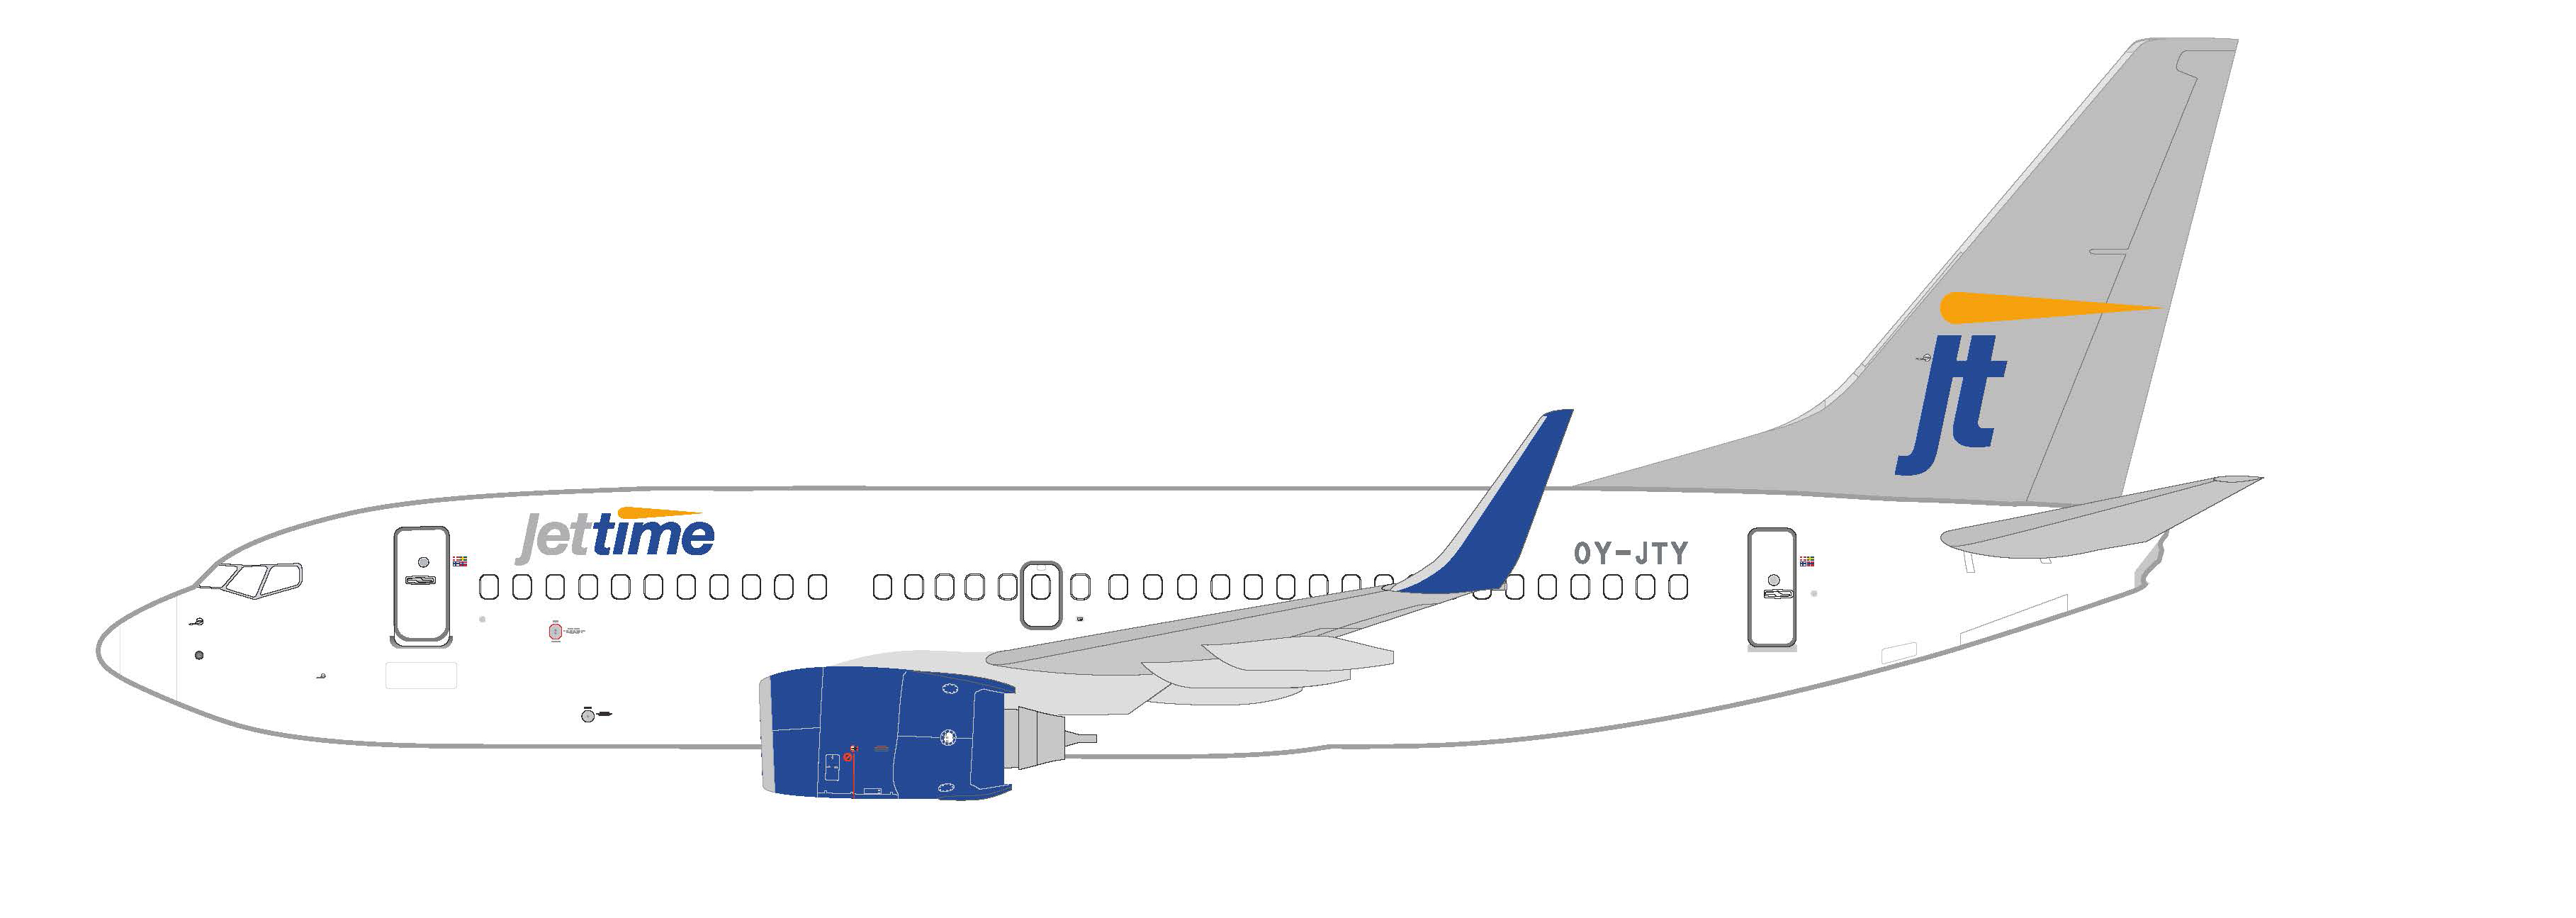 Jet Time Livery_FINAL DESIGN_2017_BLUE (2)